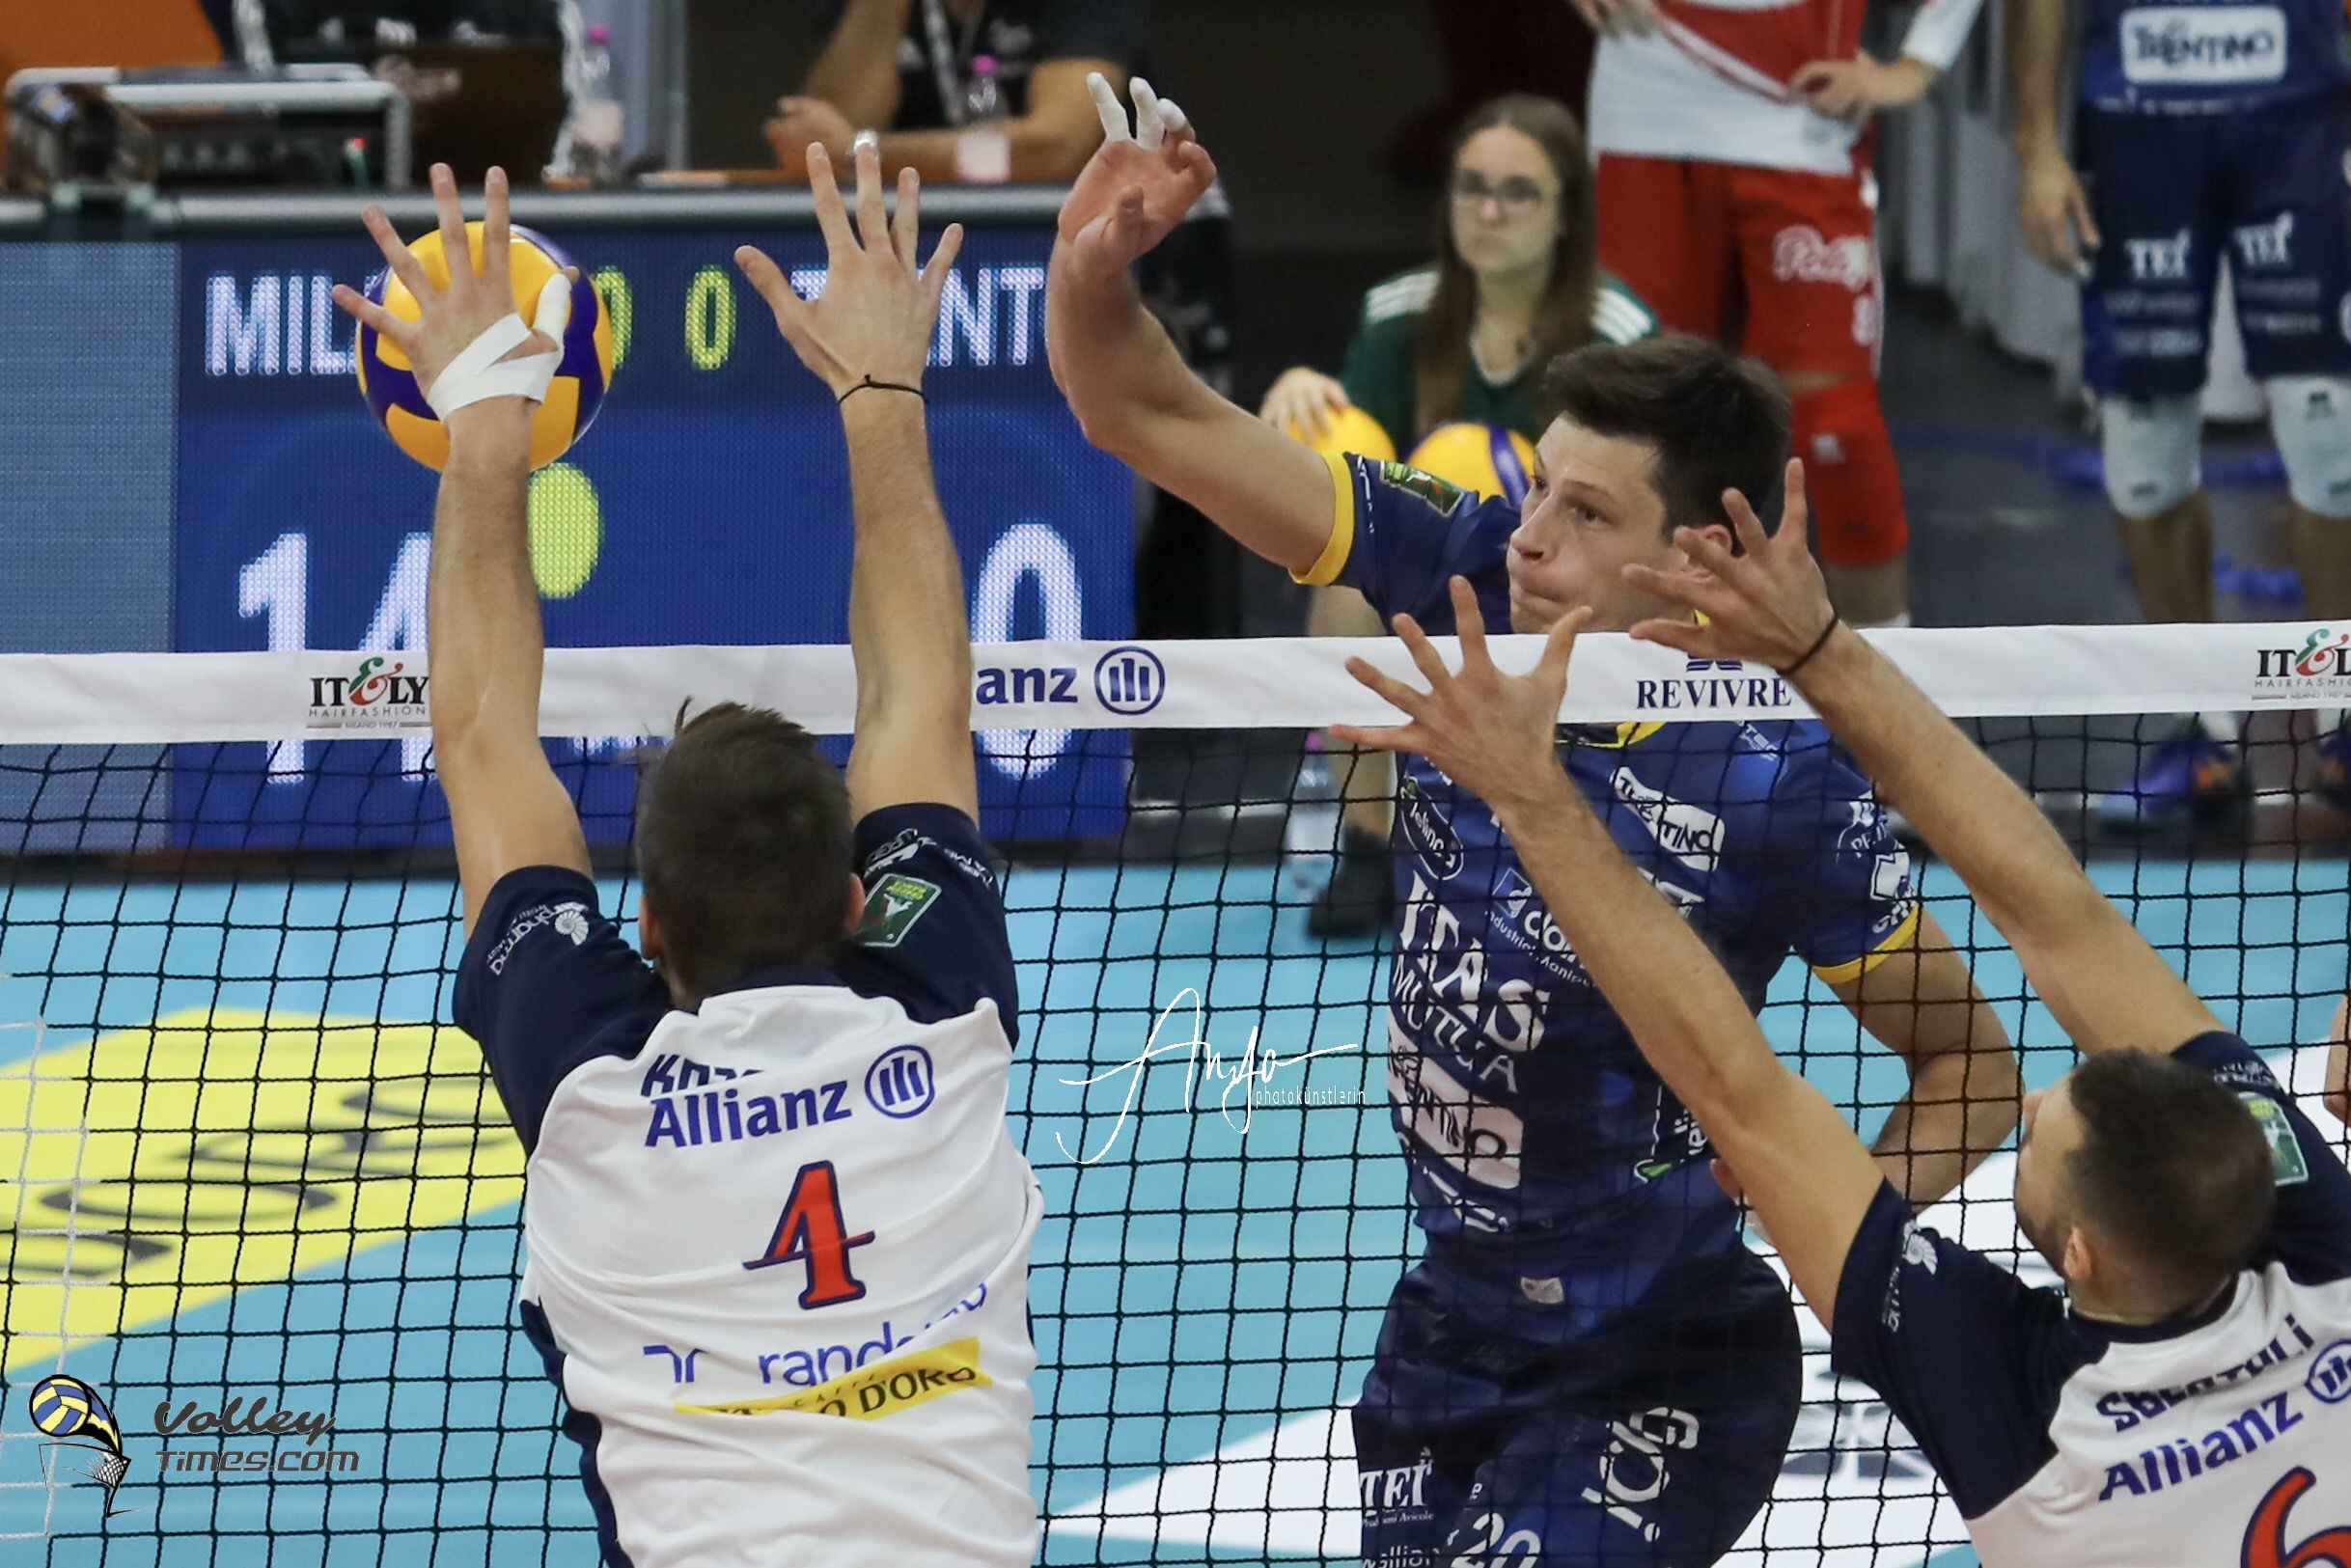 Italy: Lube Civitanova trample over Modena in big match of Round 6, veteran Alessandro Fei sets a new SuperLega record!